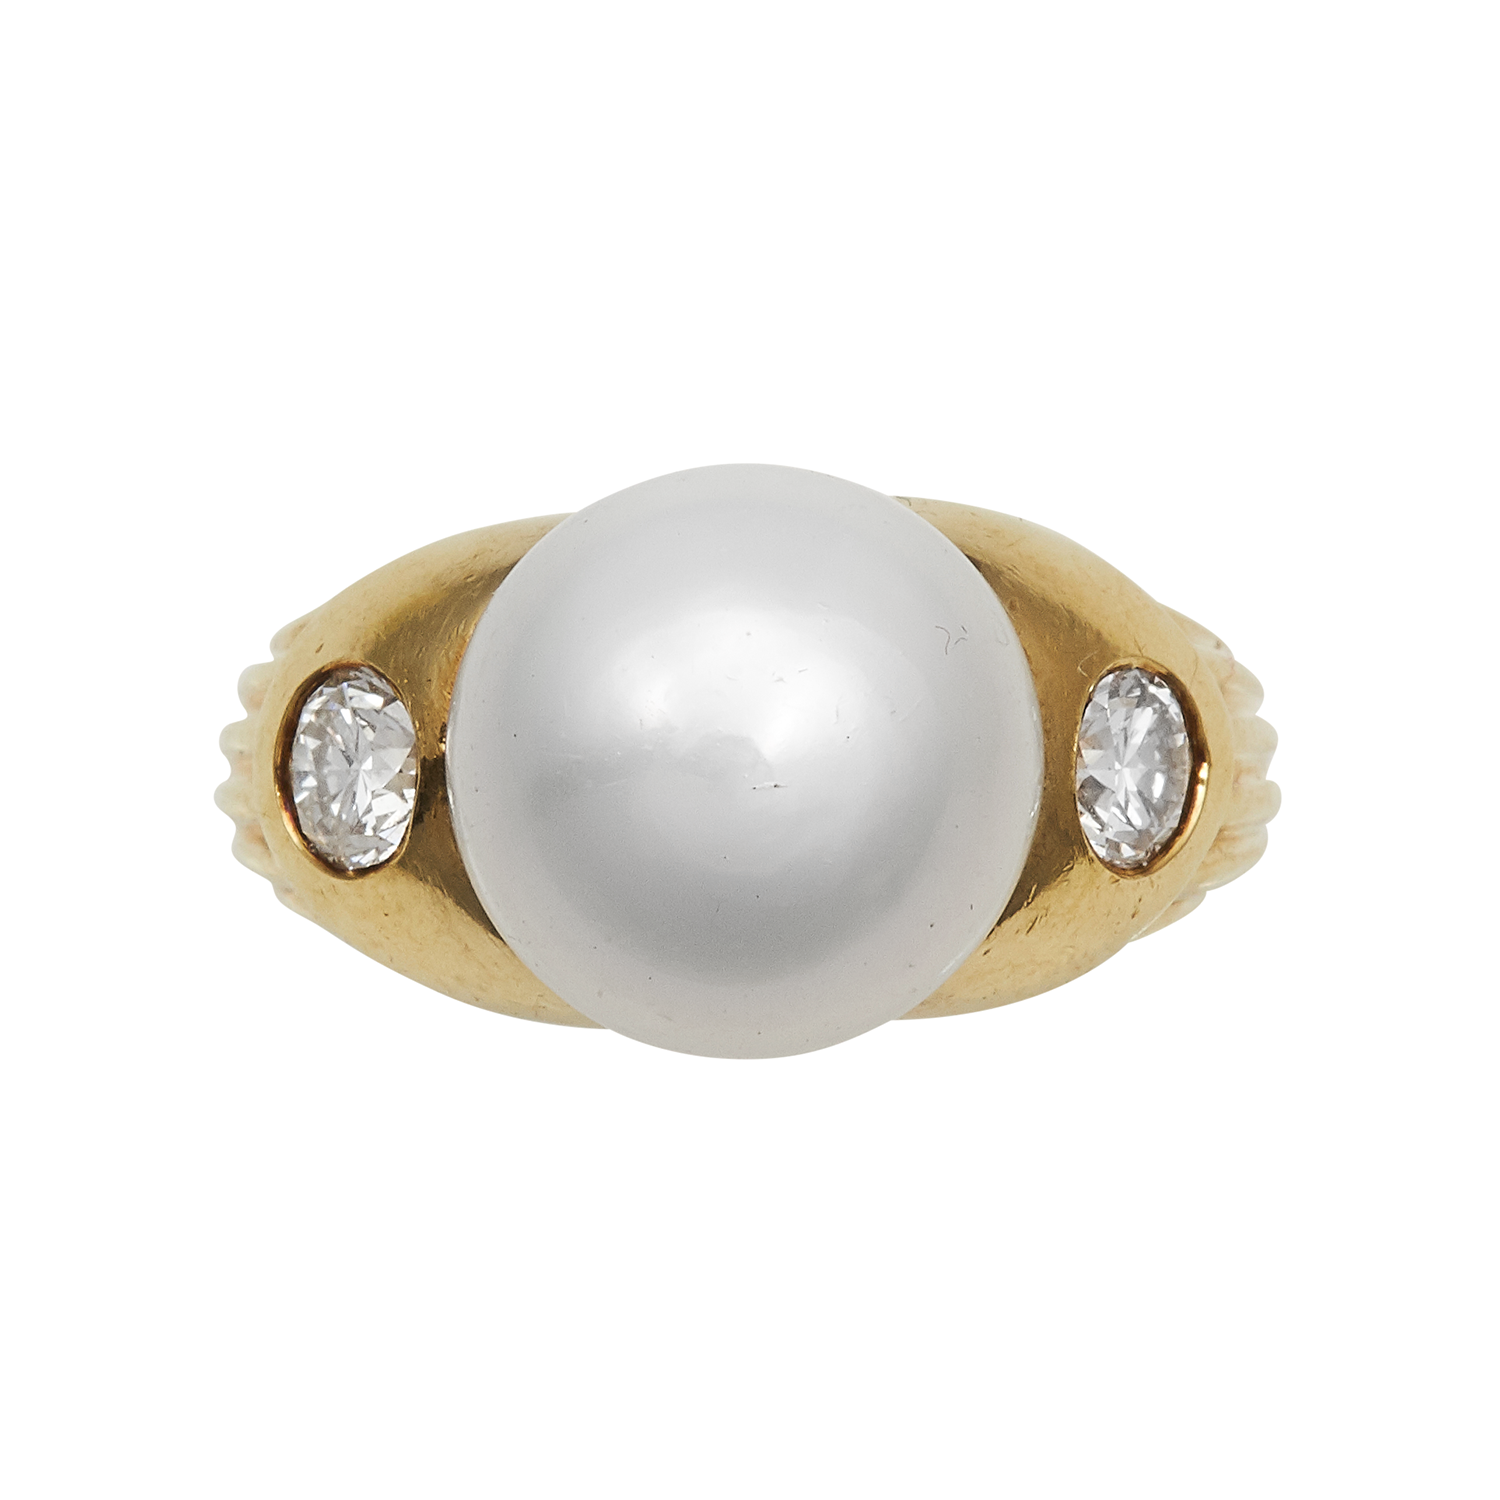 Los 26 - A PEARL AND DIAMOND THREE STONE RING in high carat yellow gold, set with a central pearl of 11.